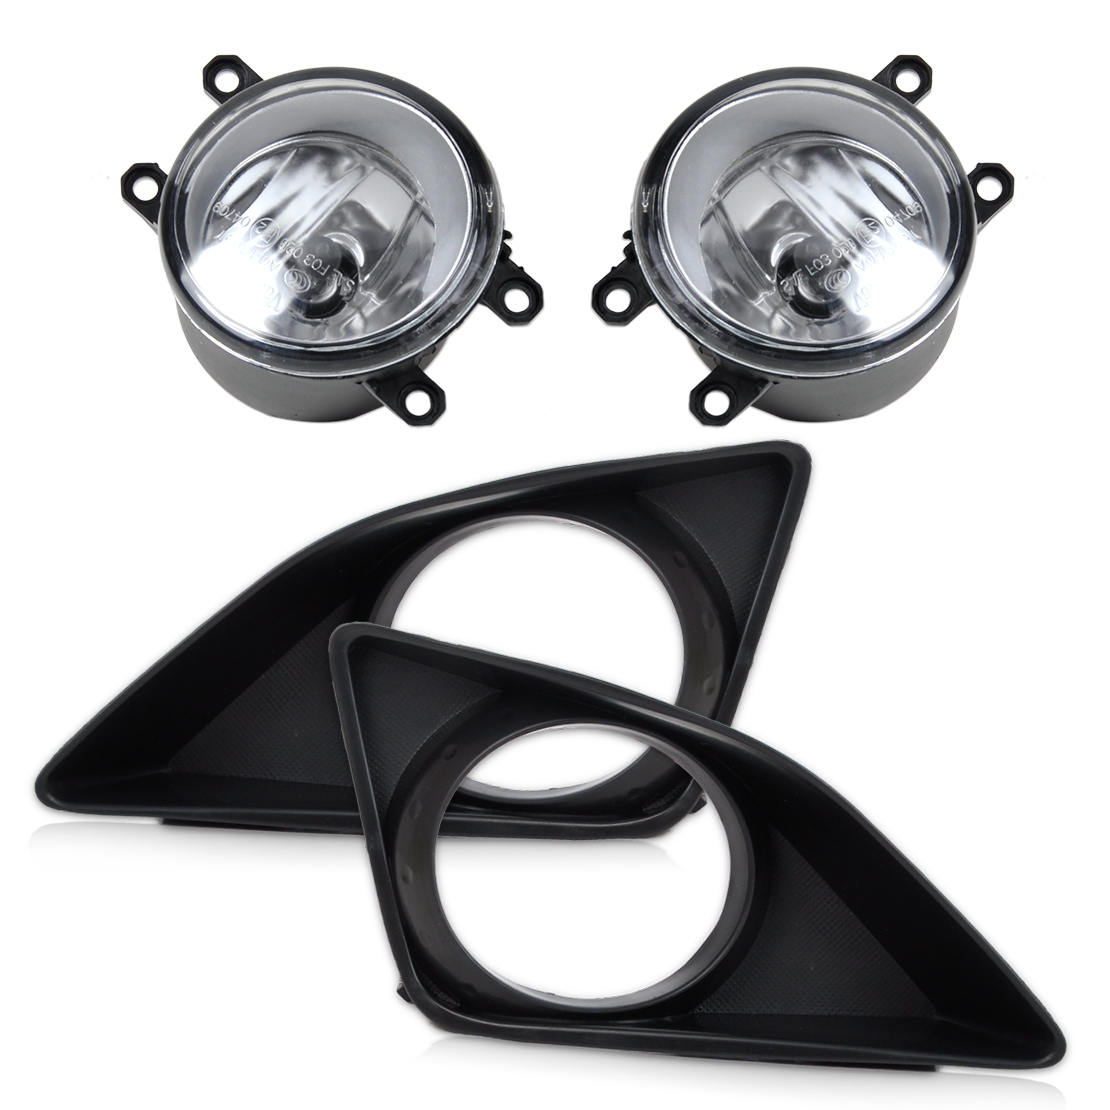 DWCX New 4pcs Black Front Right/Left Fog Light Lamp + Grille Cover Bezel for Toyota Corolla 2007 2008 2009 2010 Fast Shipping 1 set left right car styling front halogen fog lamps fog lights 81210 06052 for toyota rav4 2006 2007 2008 2009 2010 2011 12